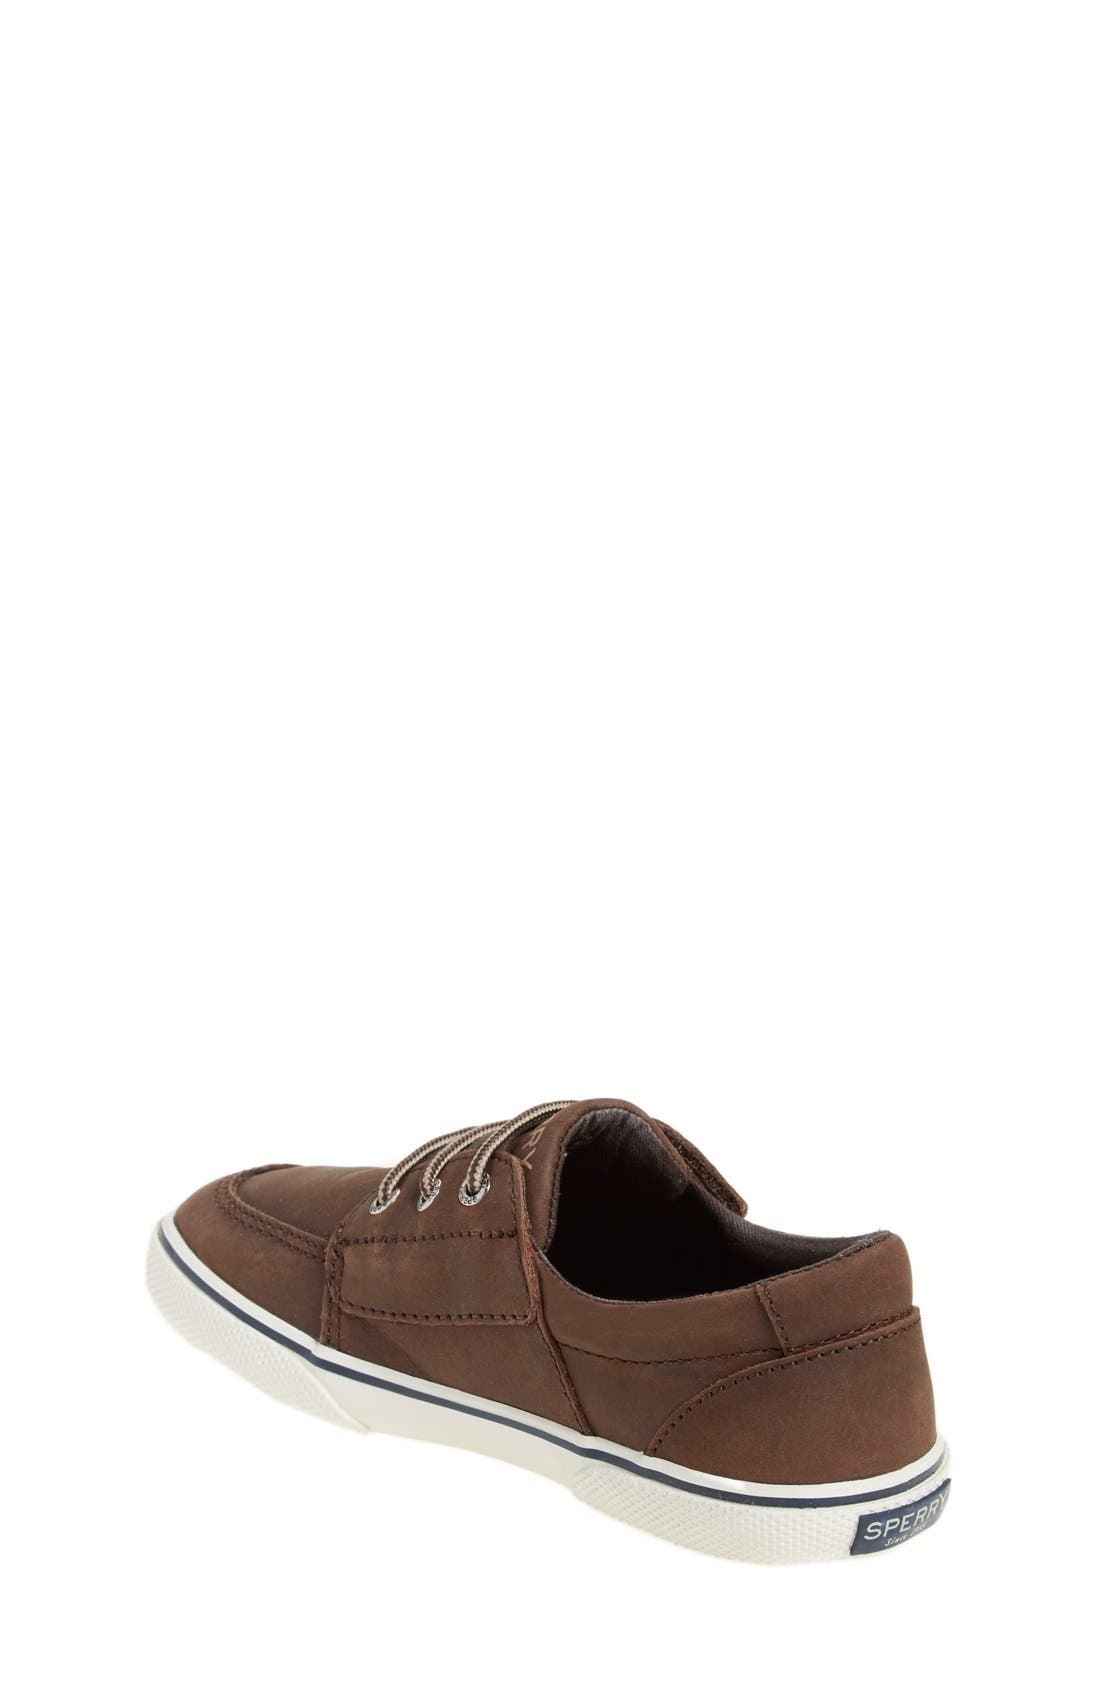 'Ollie Jr.' Slip-On Sneaker,                             Alternate thumbnail 9, color,